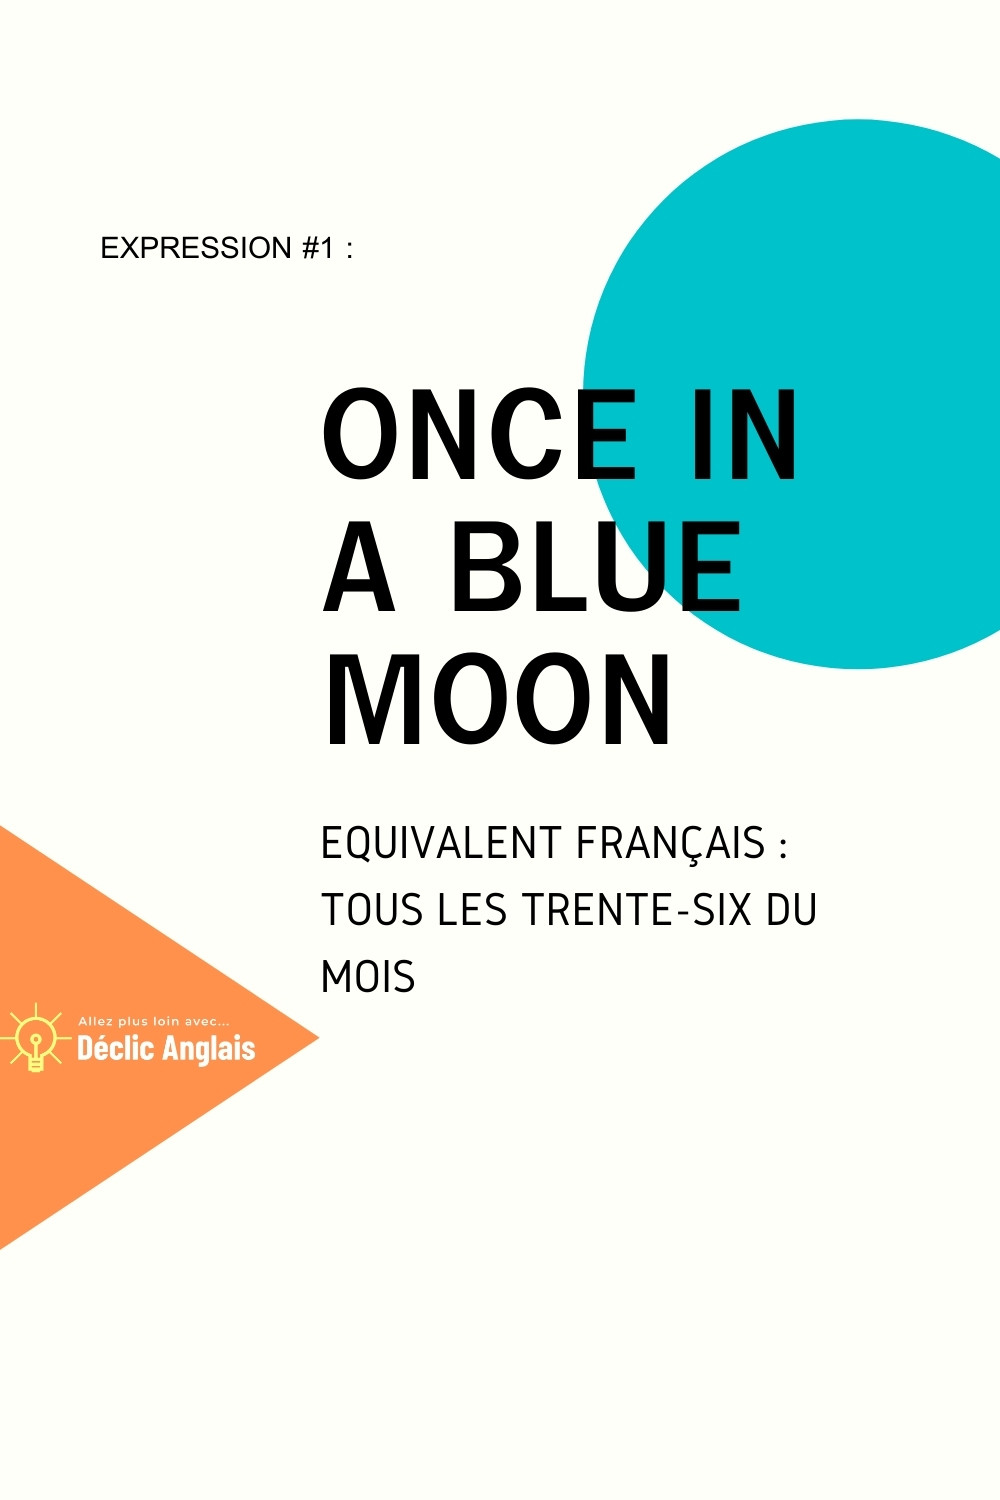 English expression once in a blue moon explained in French